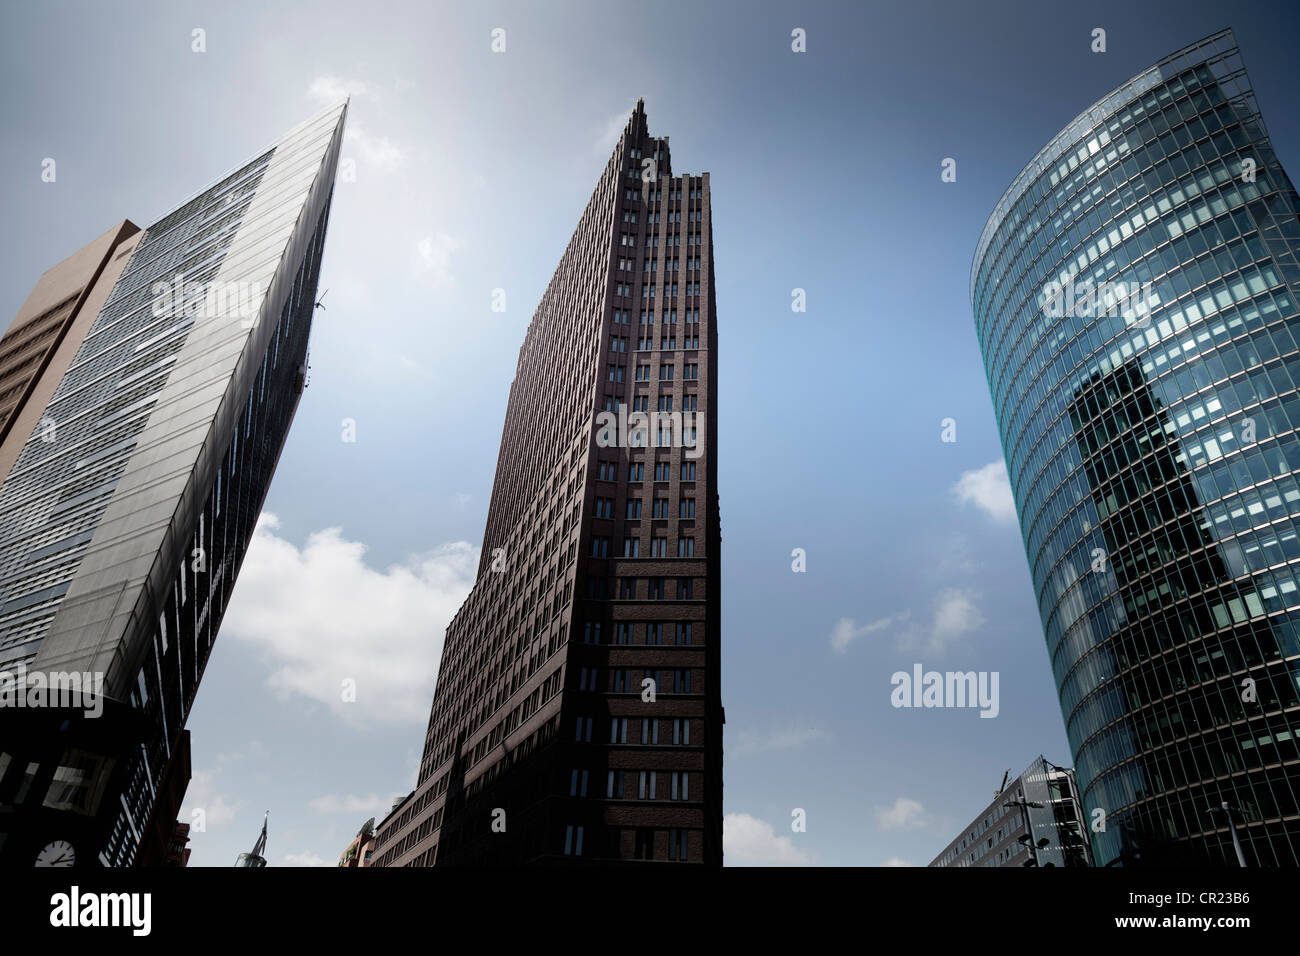 Low angle view of urban skyscrapers - Stock Image